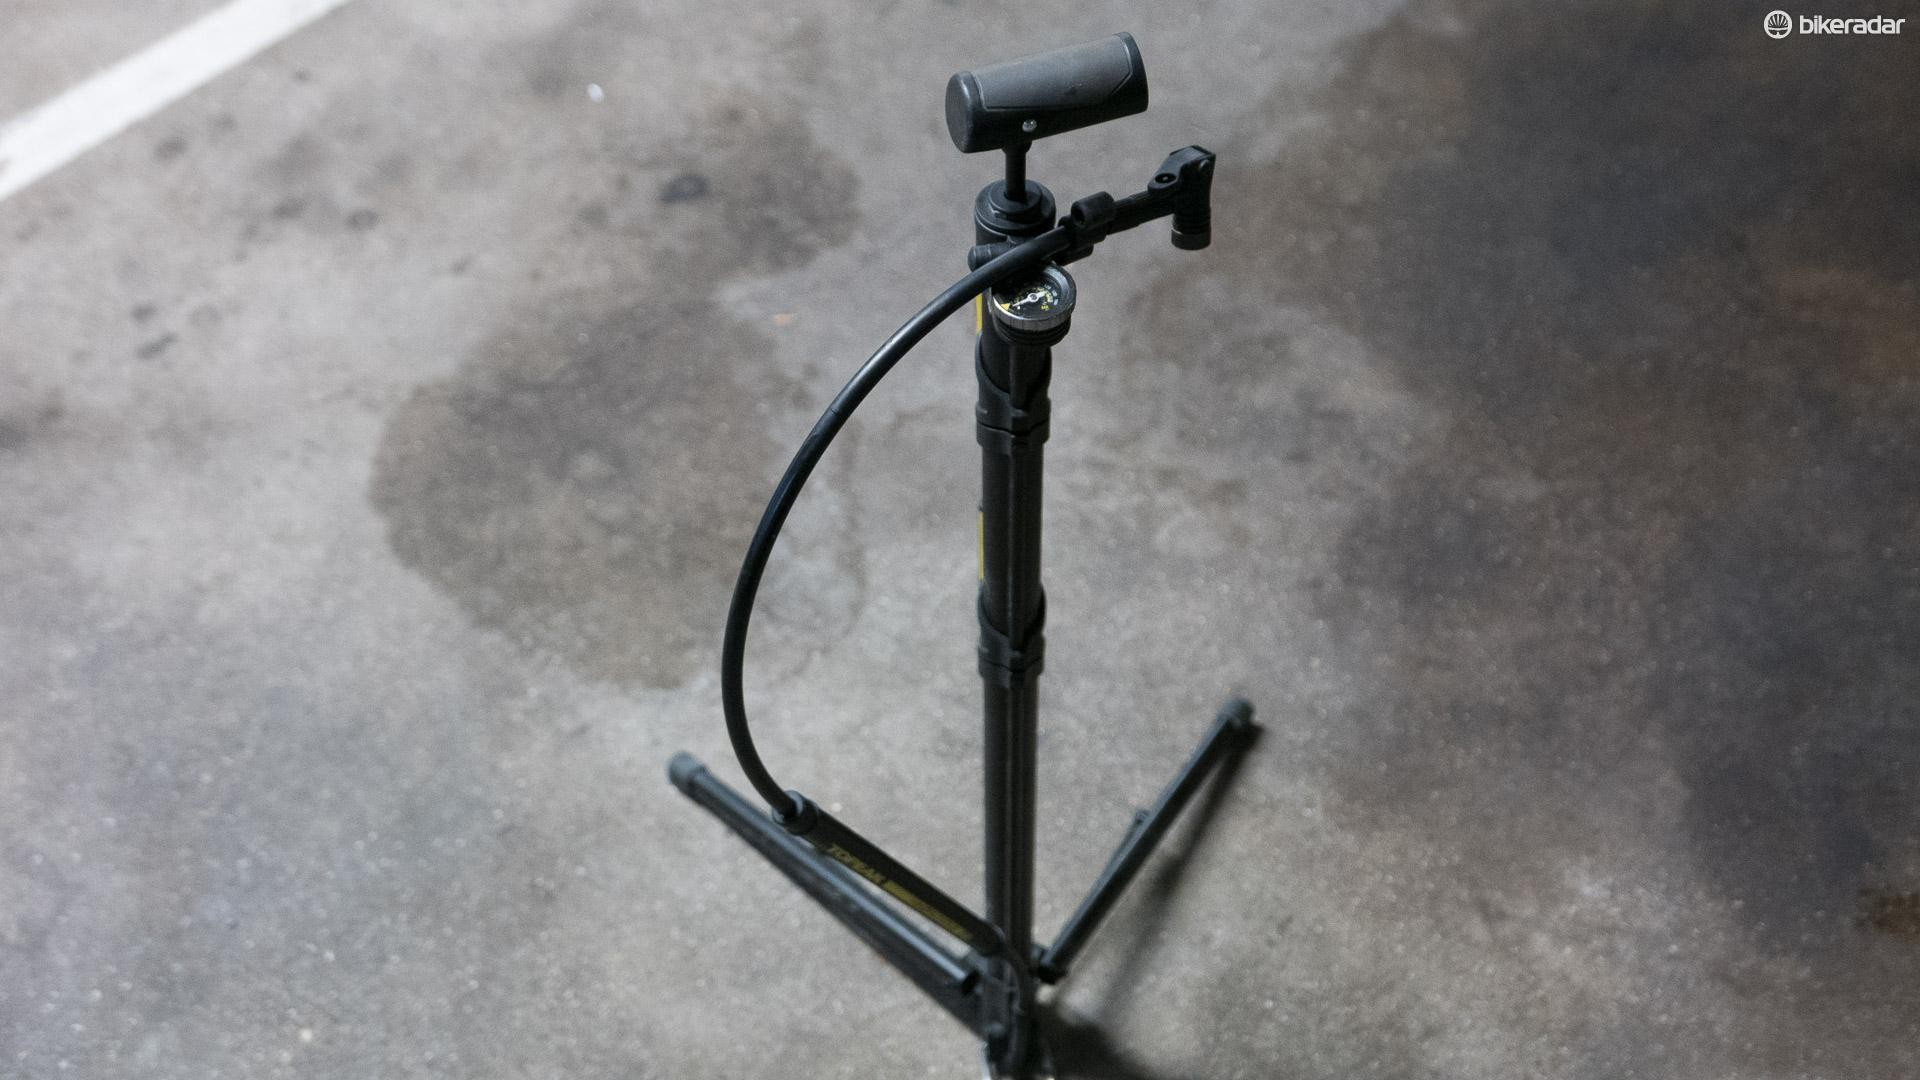 The retractable hose has enough length to allow you to pump your tyres up while hanging your bike in the stand